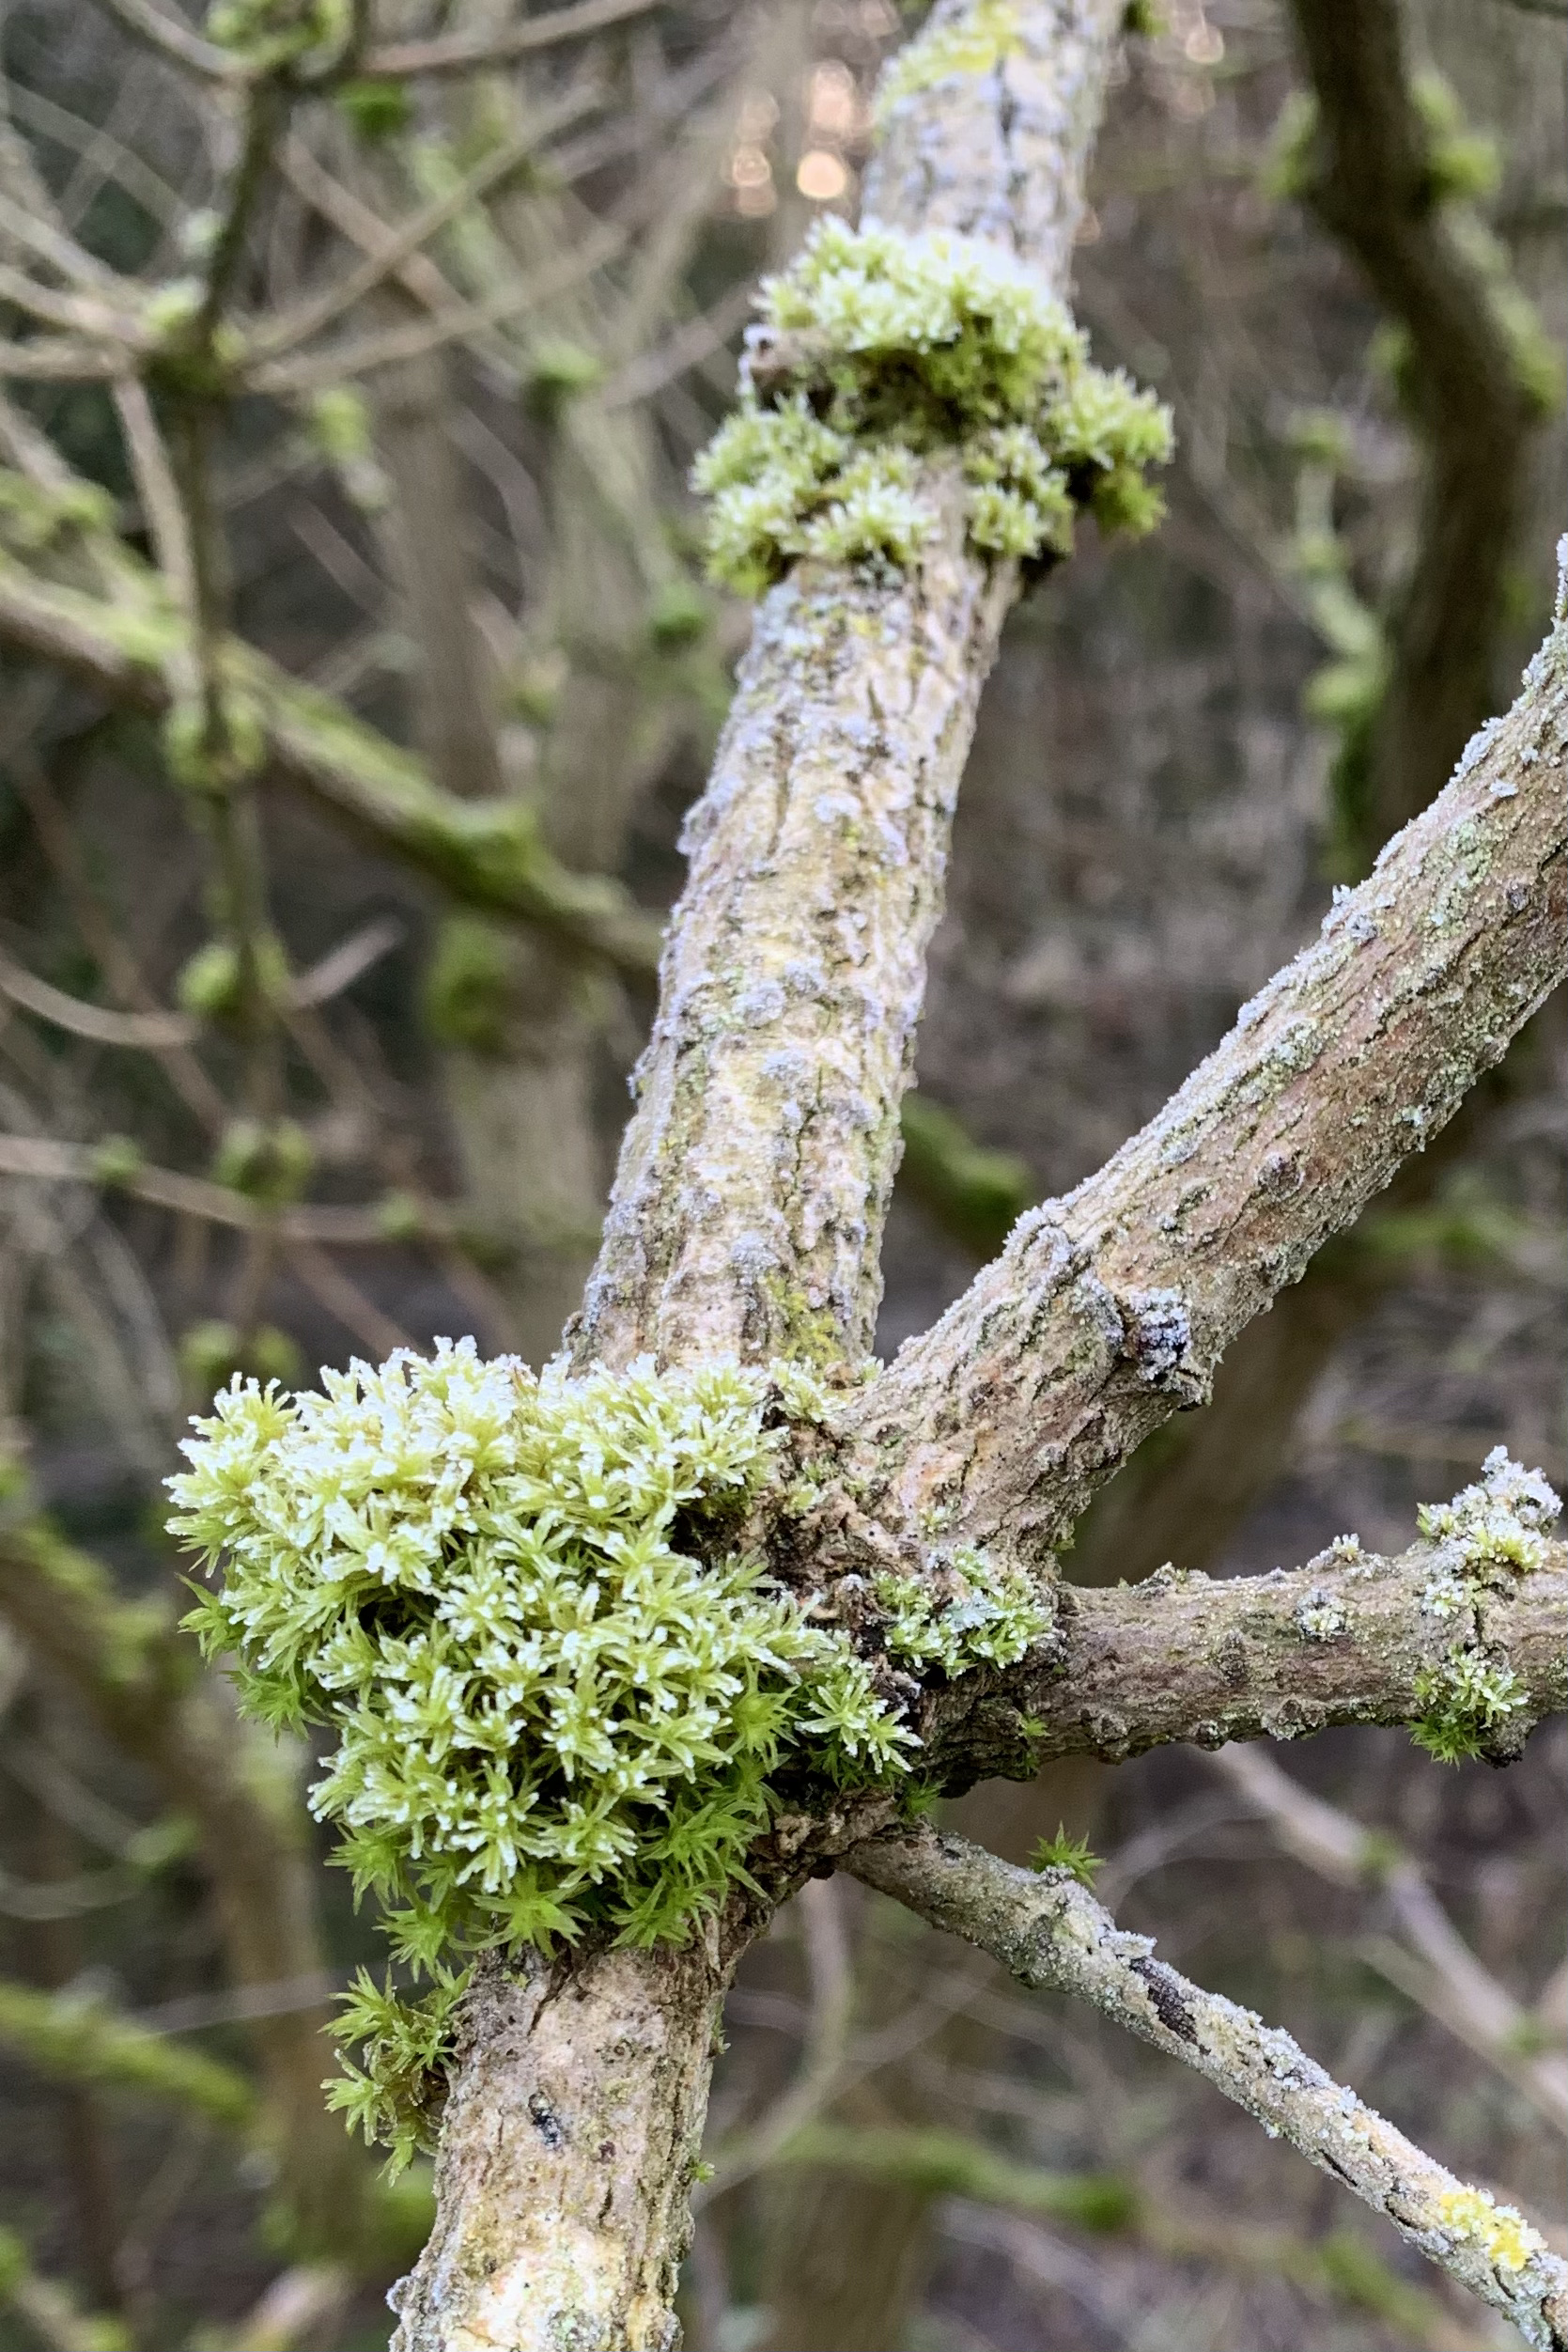 Frosted moss growing on the branch of an elder tree